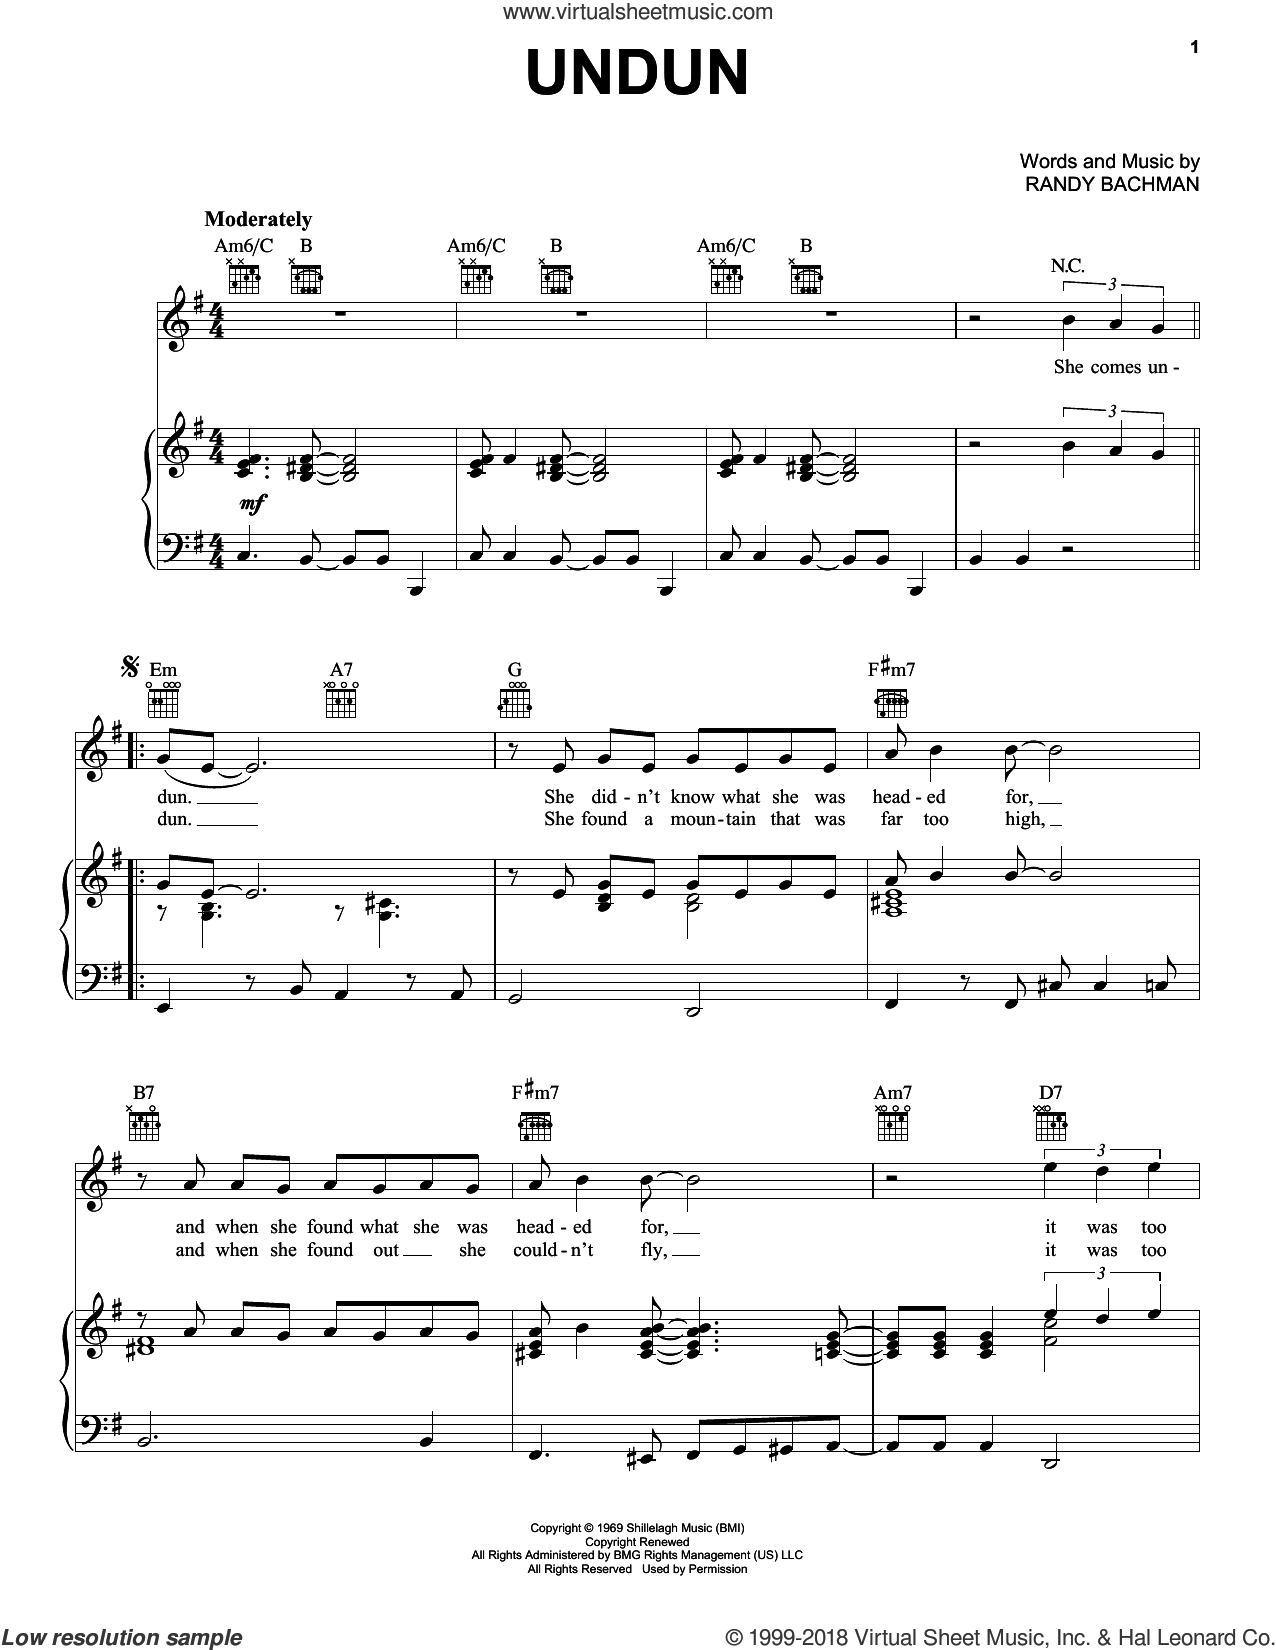 Undun sheet music for voice, piano or guitar by The Guess Who and Randy Bachman, intermediate skill level